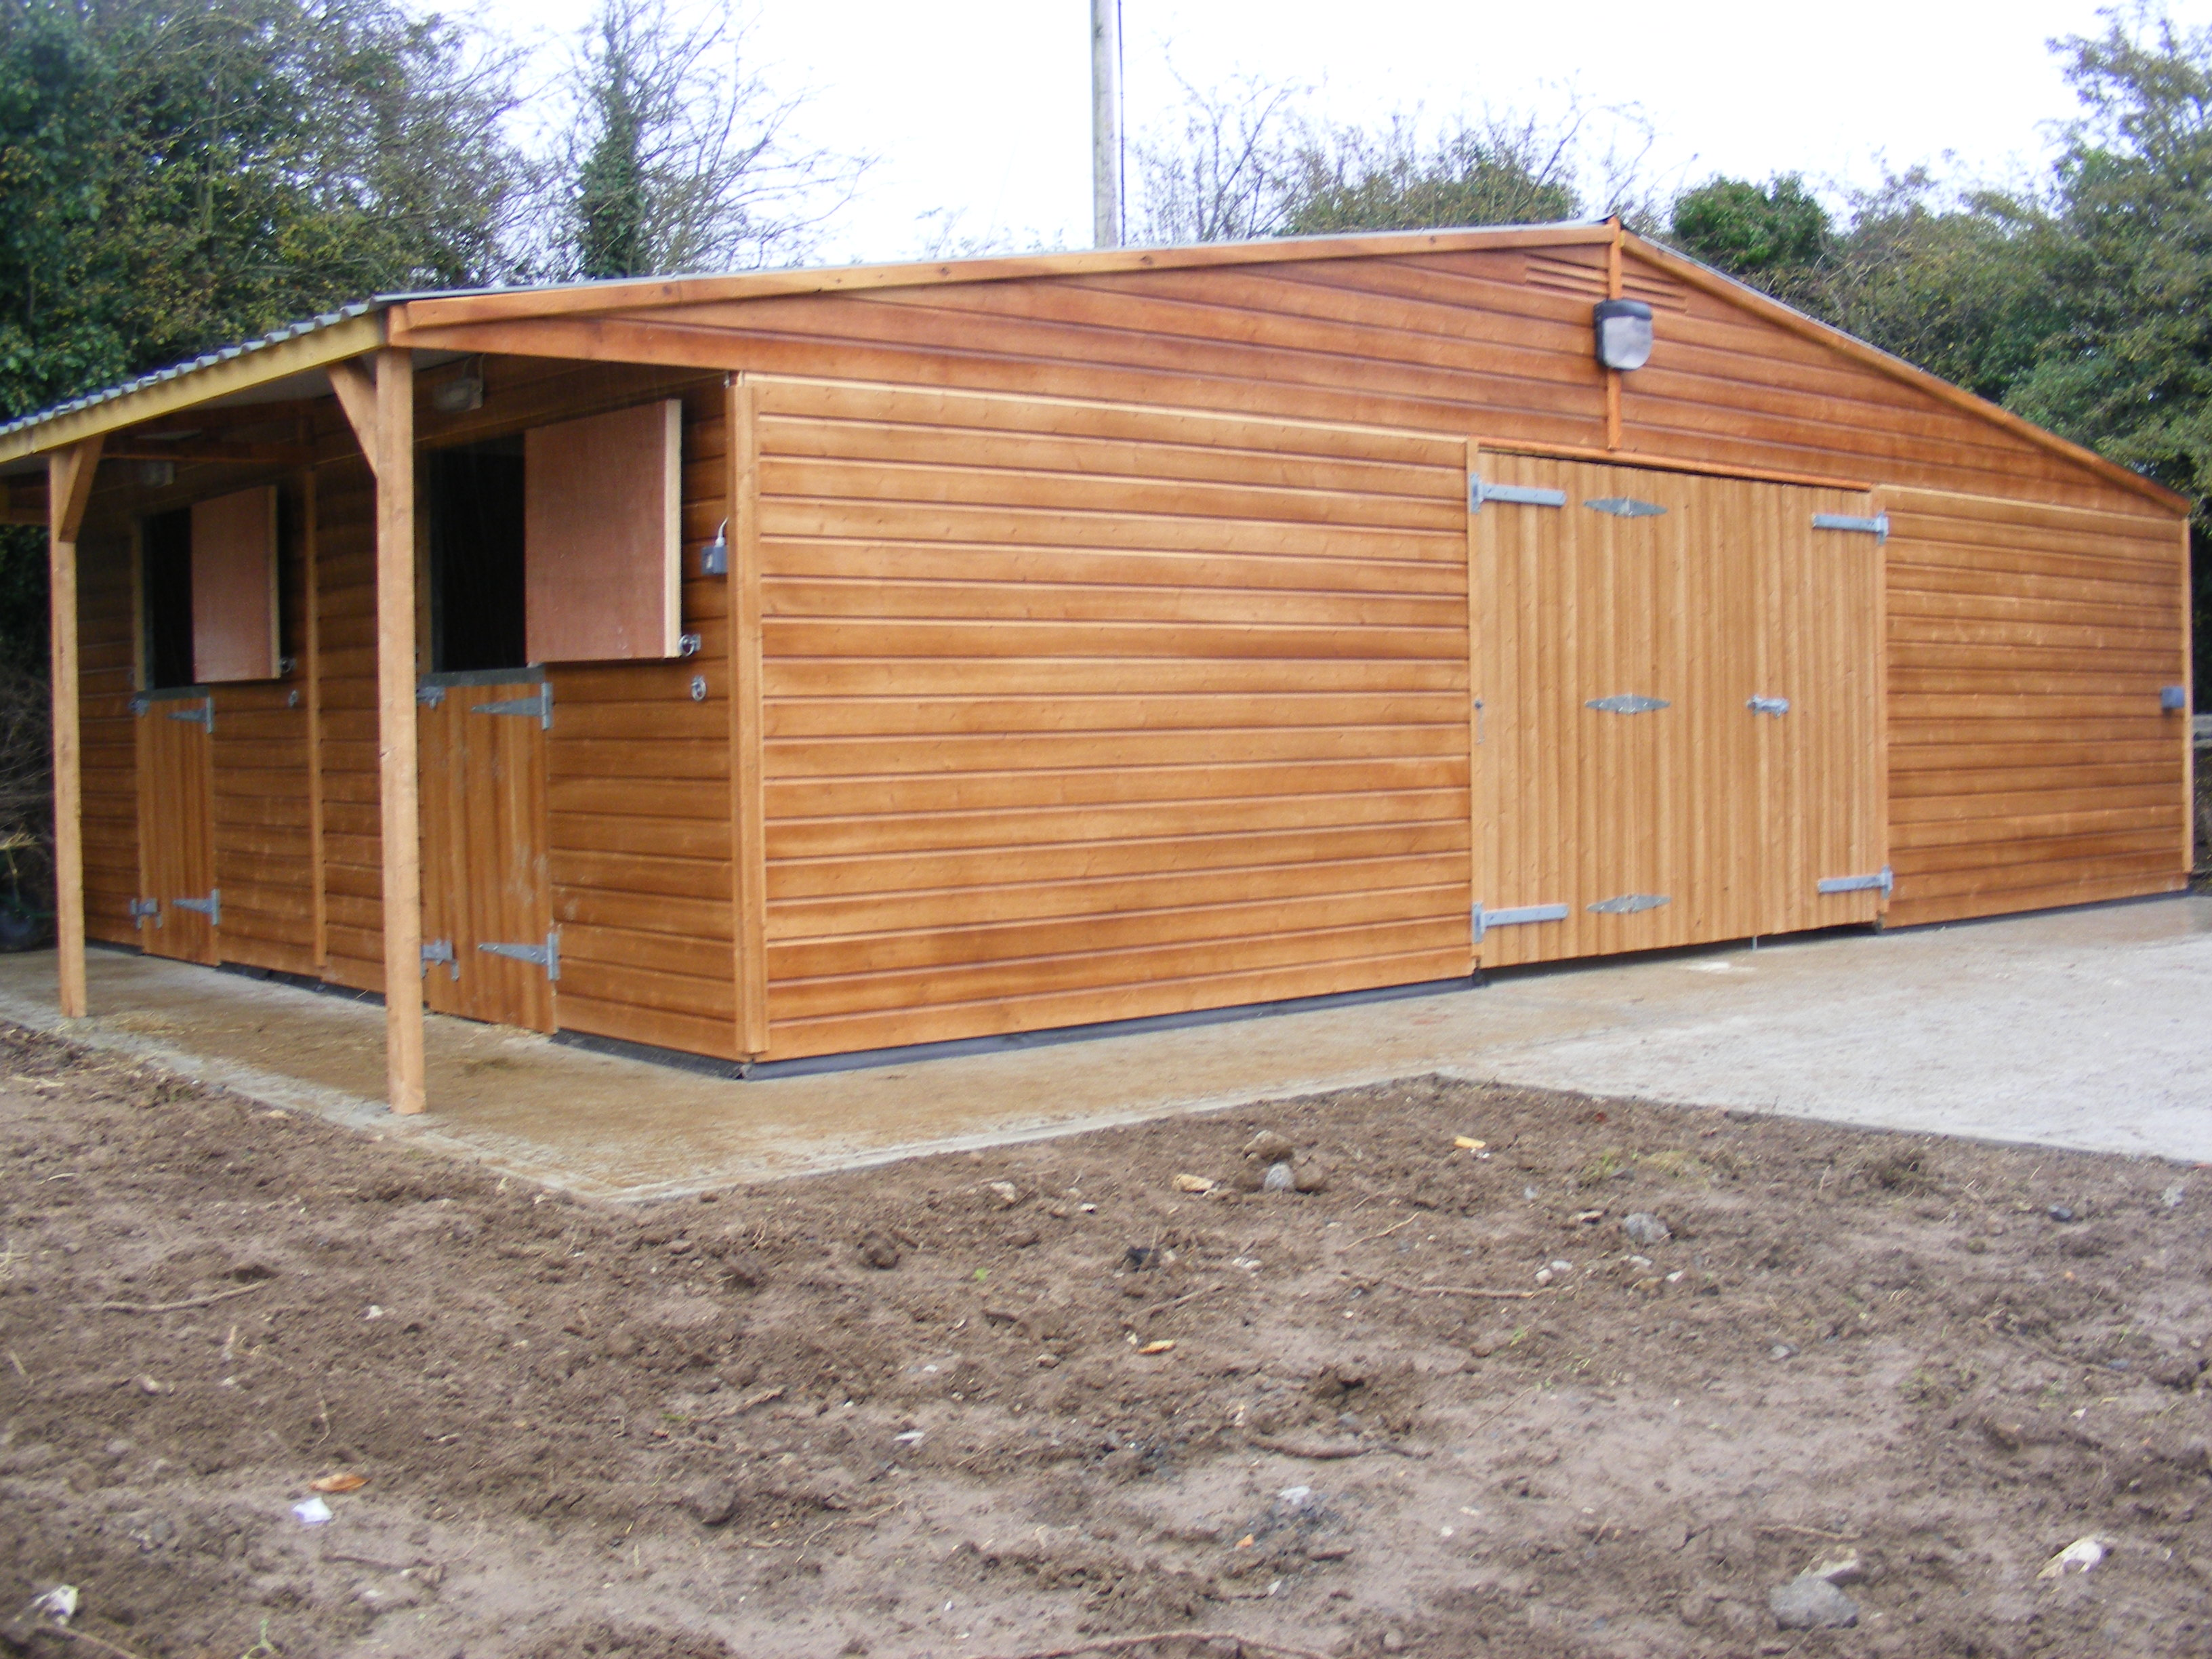 Garden Sheds Tipperary horseworld stables - quality equestrian buildings tipperary ireland